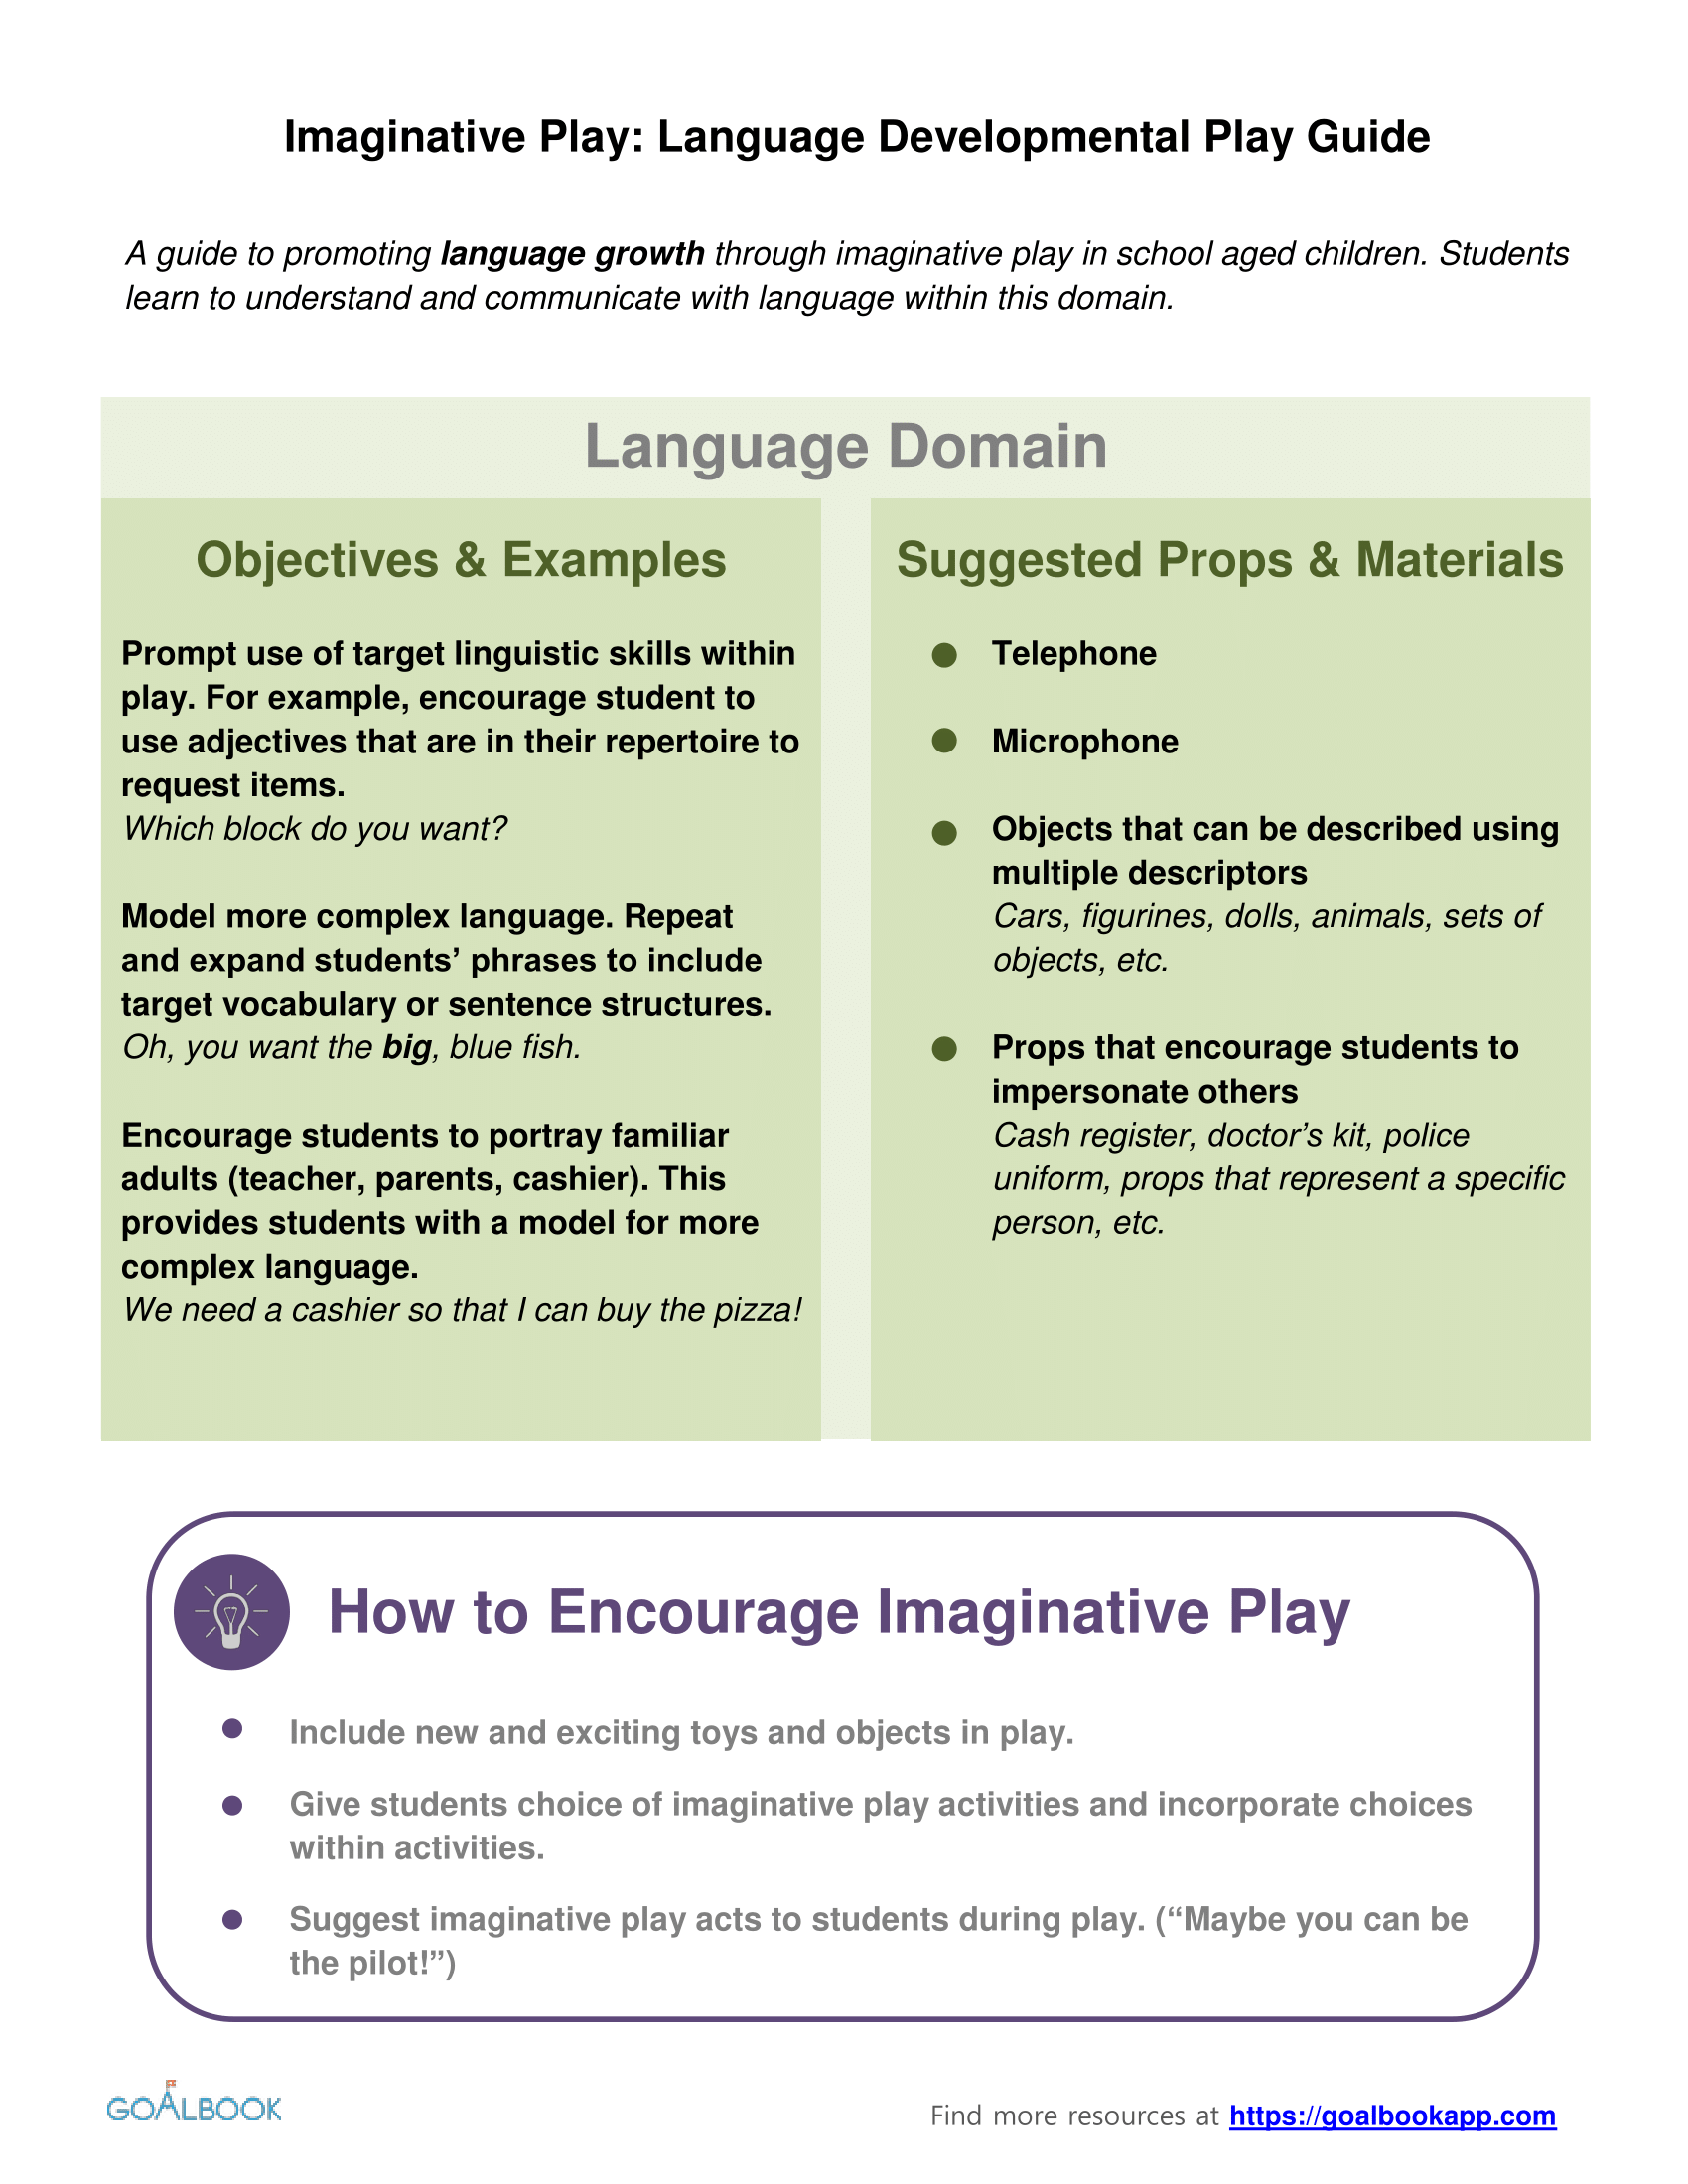 Language Development Imaginative Play Guide